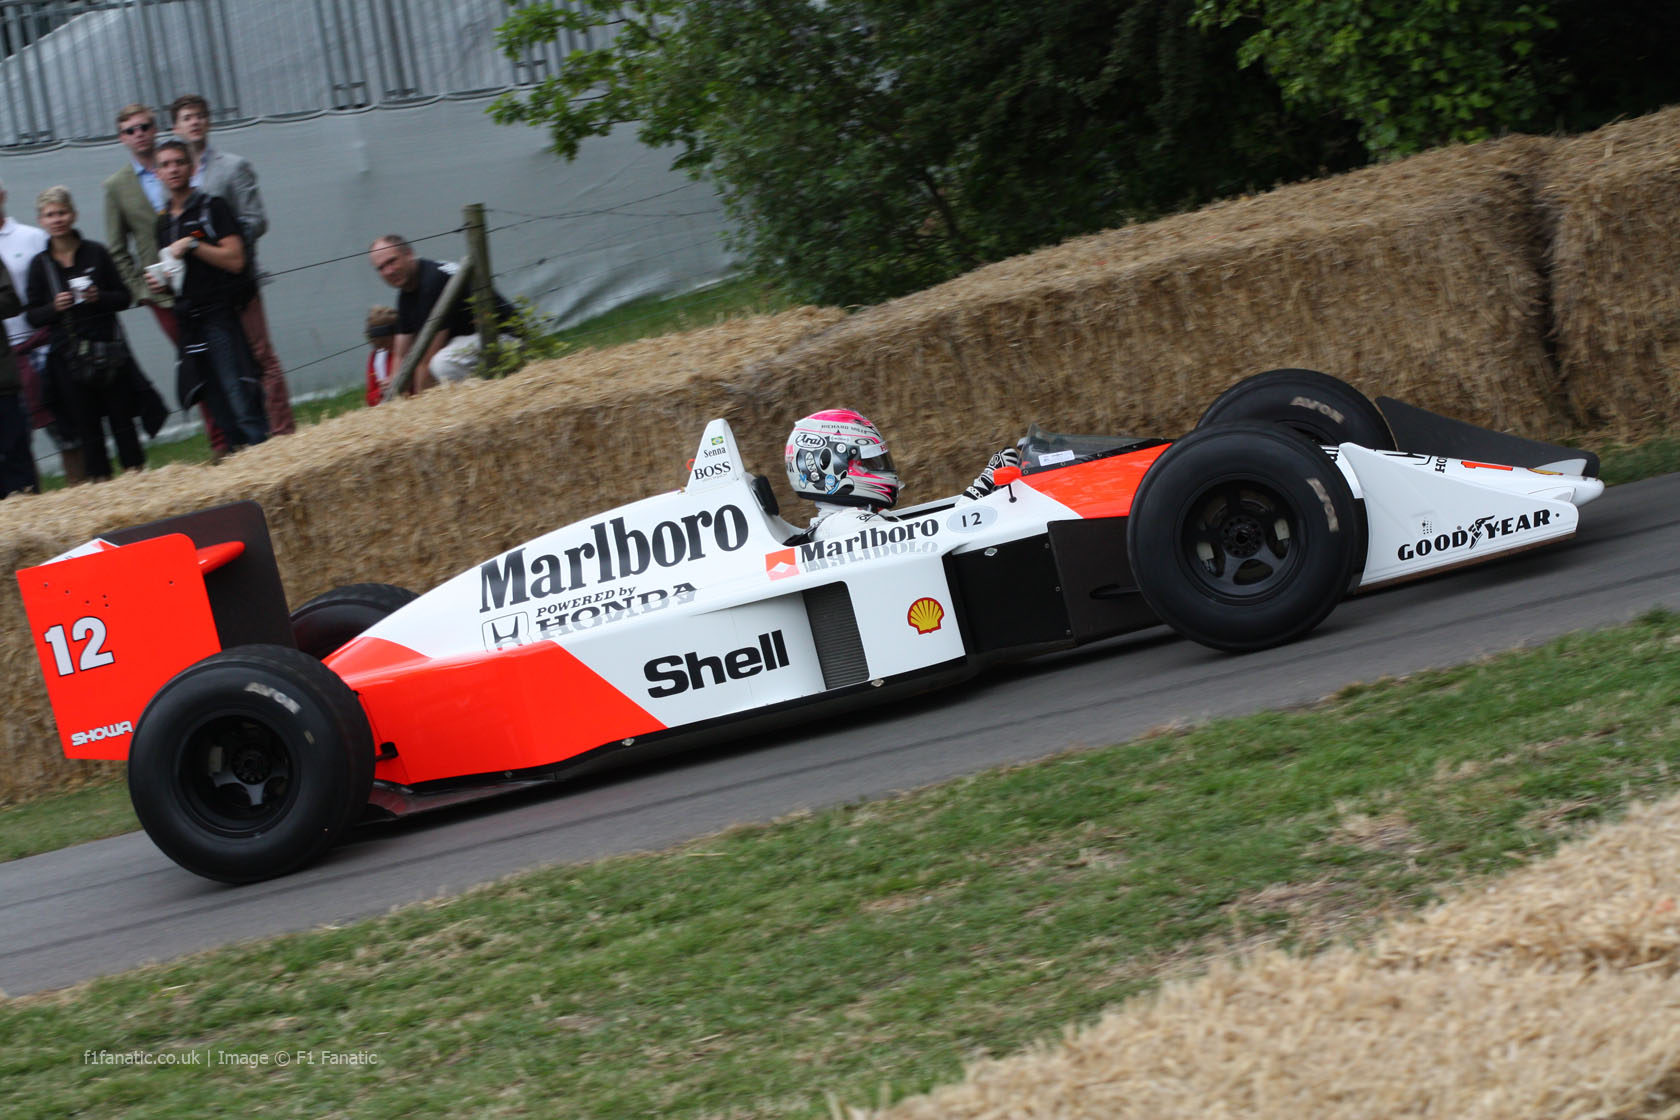 McLaren MP4-4 (3), Goodwood Festival of Speed, 2014